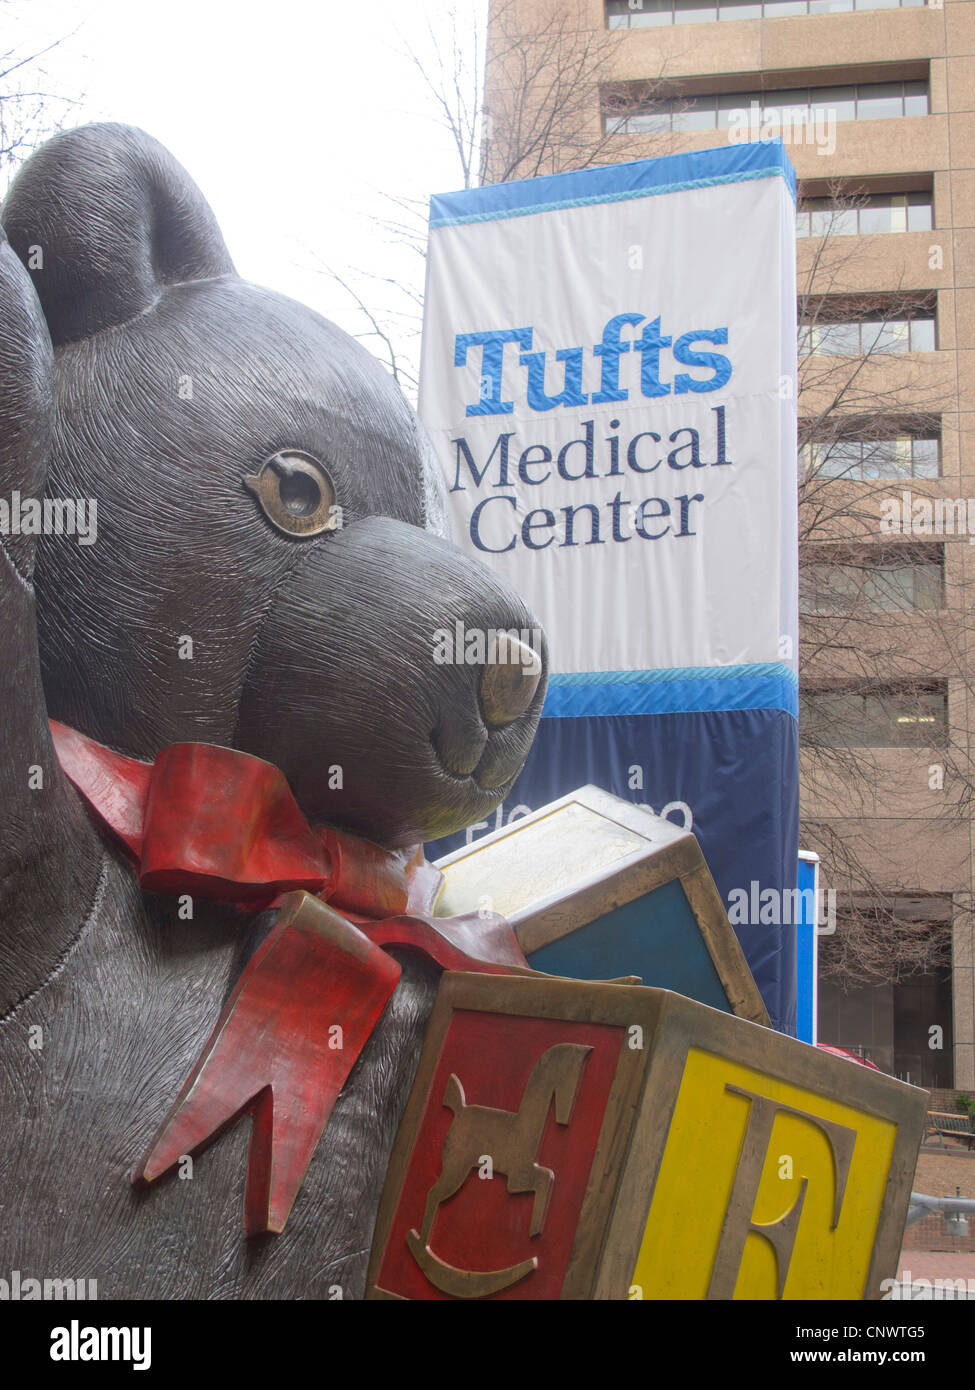 Robert Shure's teddy bear statue outside Tufts Medical